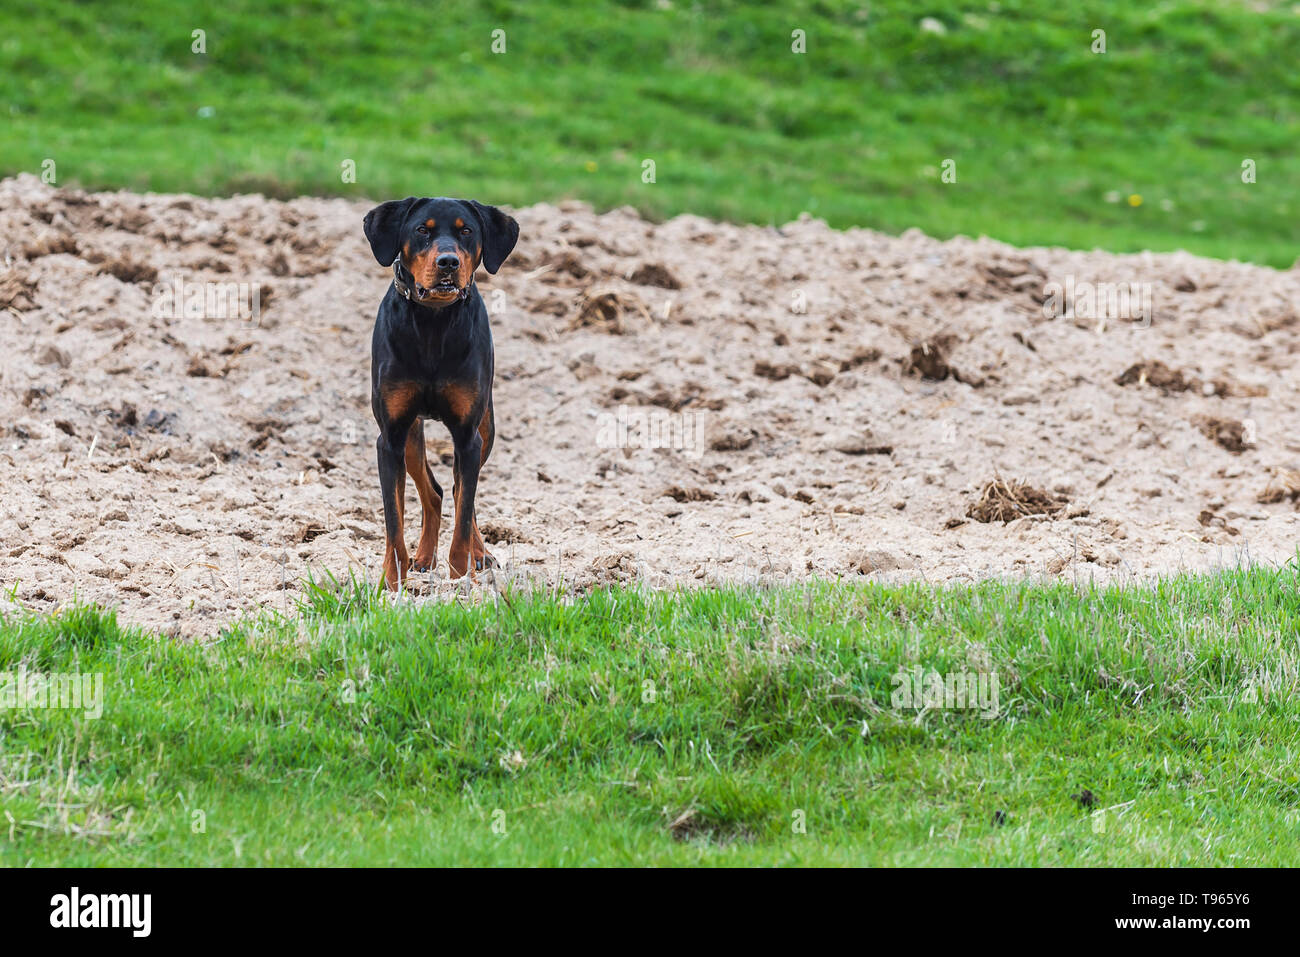 Black dog on green field - Stock Image